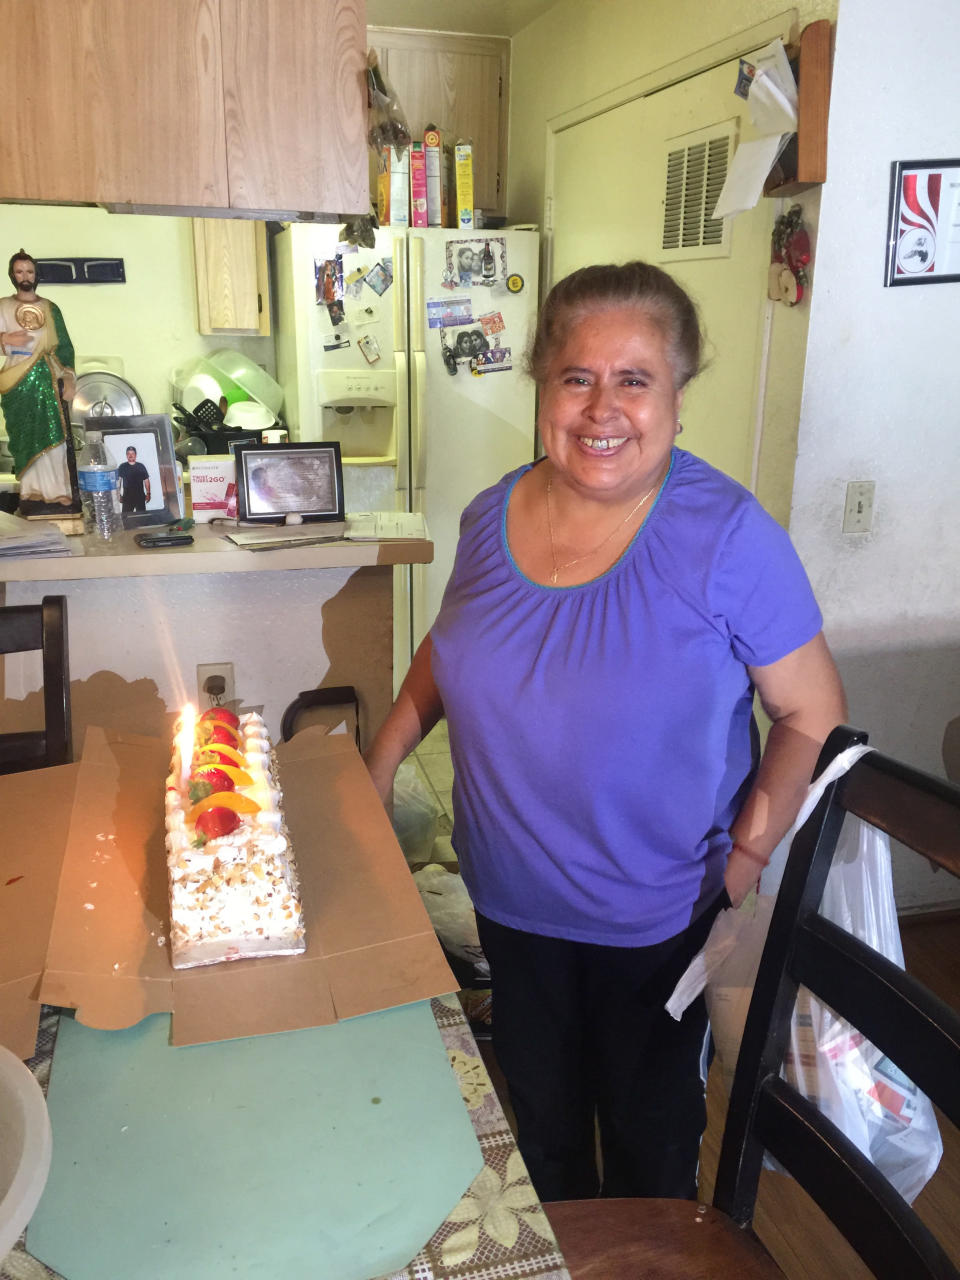 FILE - This Aug. 19, 2016 photo provided by Maria Rios Luna shows Bernardina Rios de Luna, 59, who died of COVID-19 in January, in her kitchen in Fontana, Calif. The mother of 7, who was a devout Catholic and loved to cook, is one of tens of thousands of Californians who have died of the virus. Her youngest daughter, Maria Rios Luna, said they don't know how the family was infected but she and her mother and her sister in Fontana, Calif., as well as a niece and nephew who were staying with them, all tested positive for COVID-19. (Maria Rios Luna via AP)